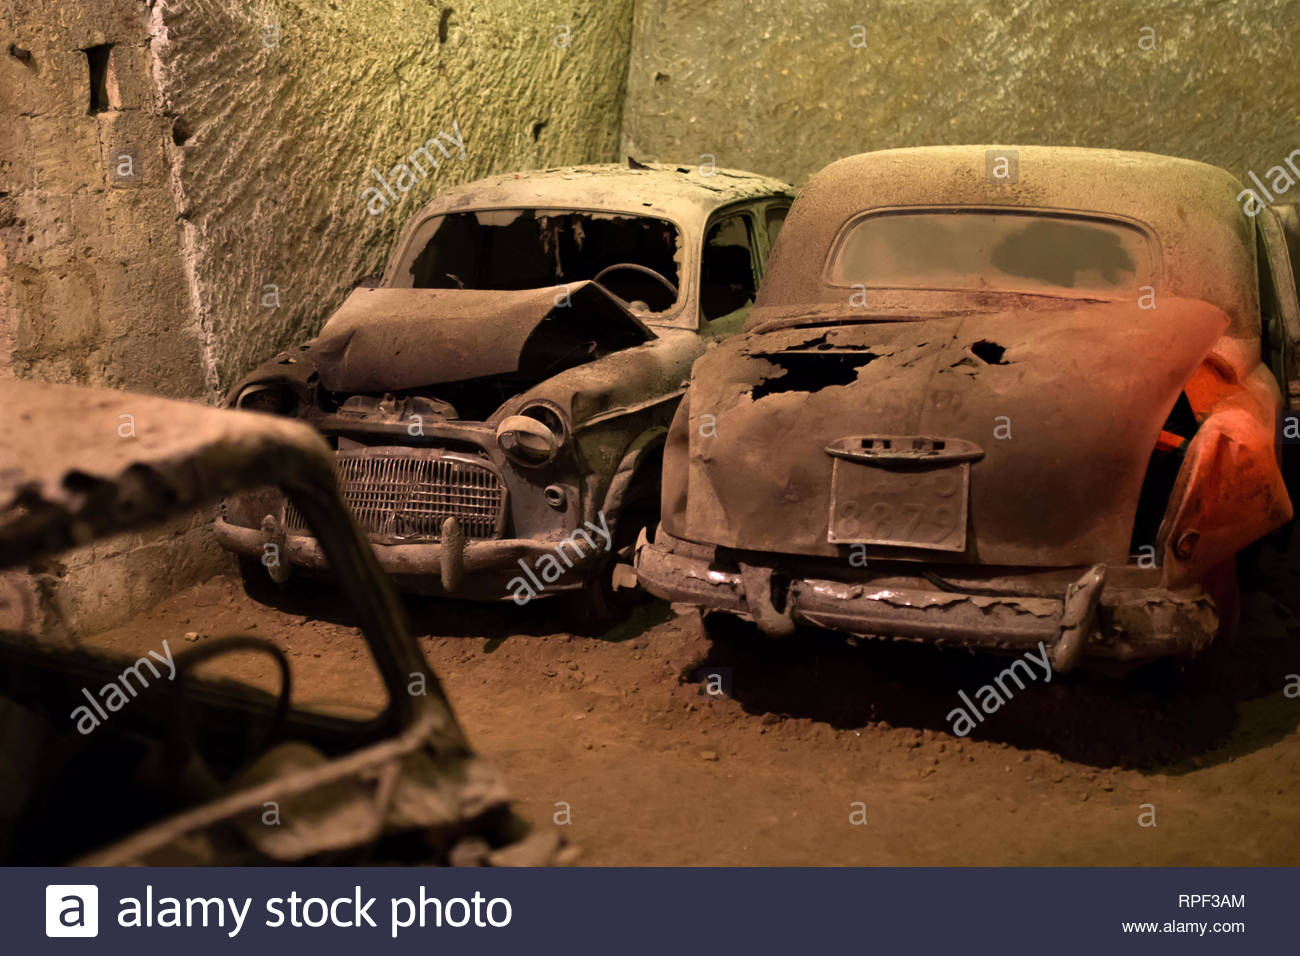 NAPLES - Crashed antique cars inside a tunnel at the Galleria Borbonica. - Stock Image